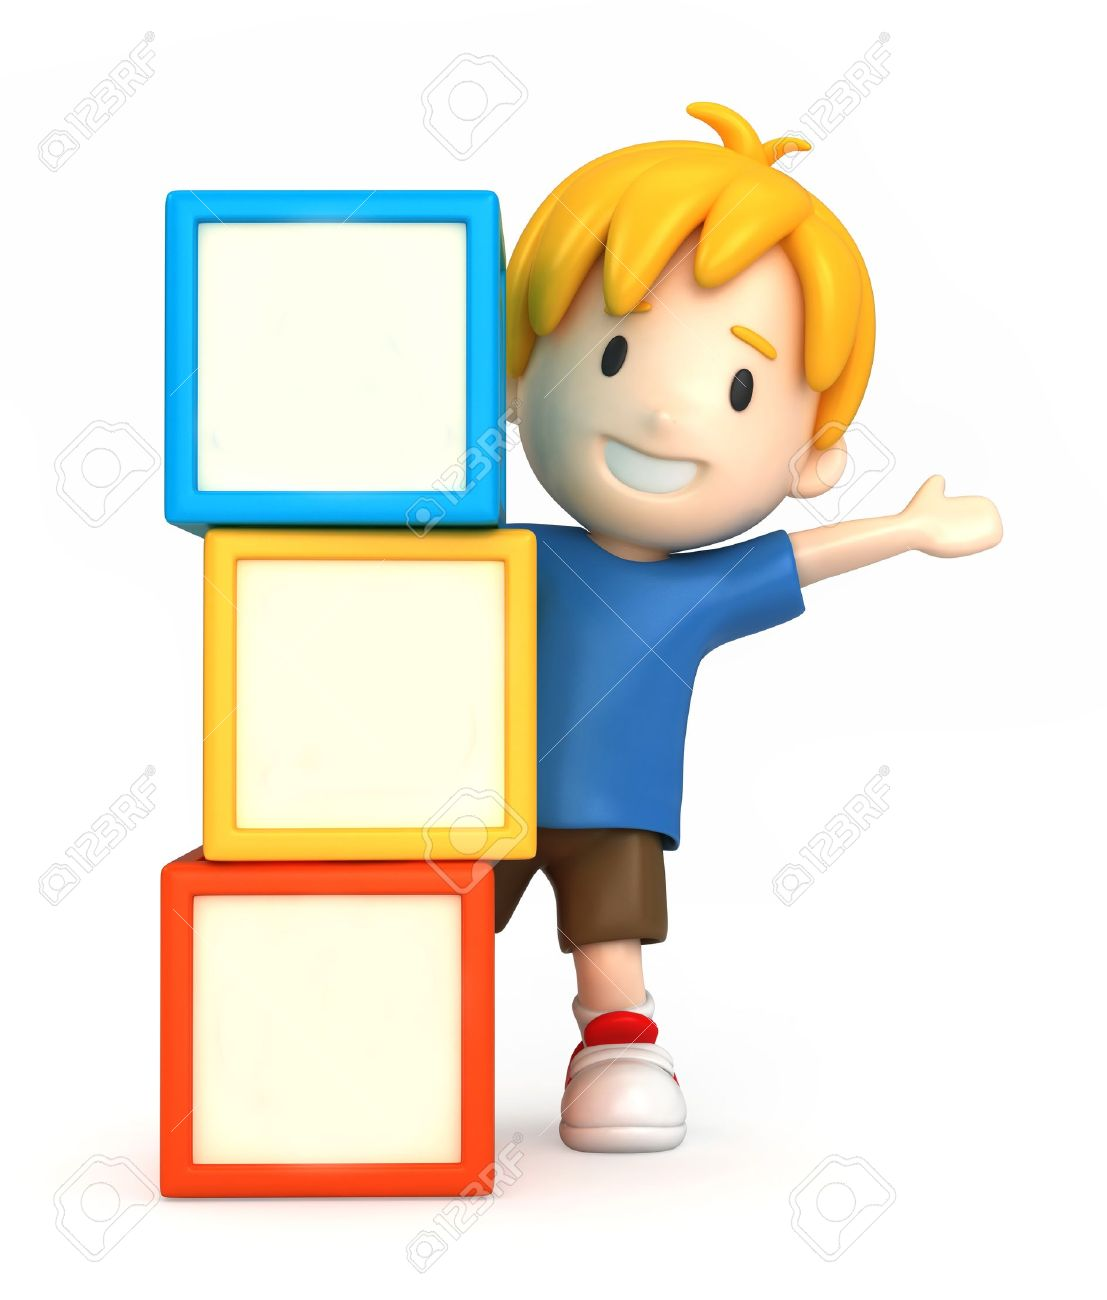 Child building with blocks clipart image freeuse stock Clipart boy building blocks - ClipartFest image freeuse stock